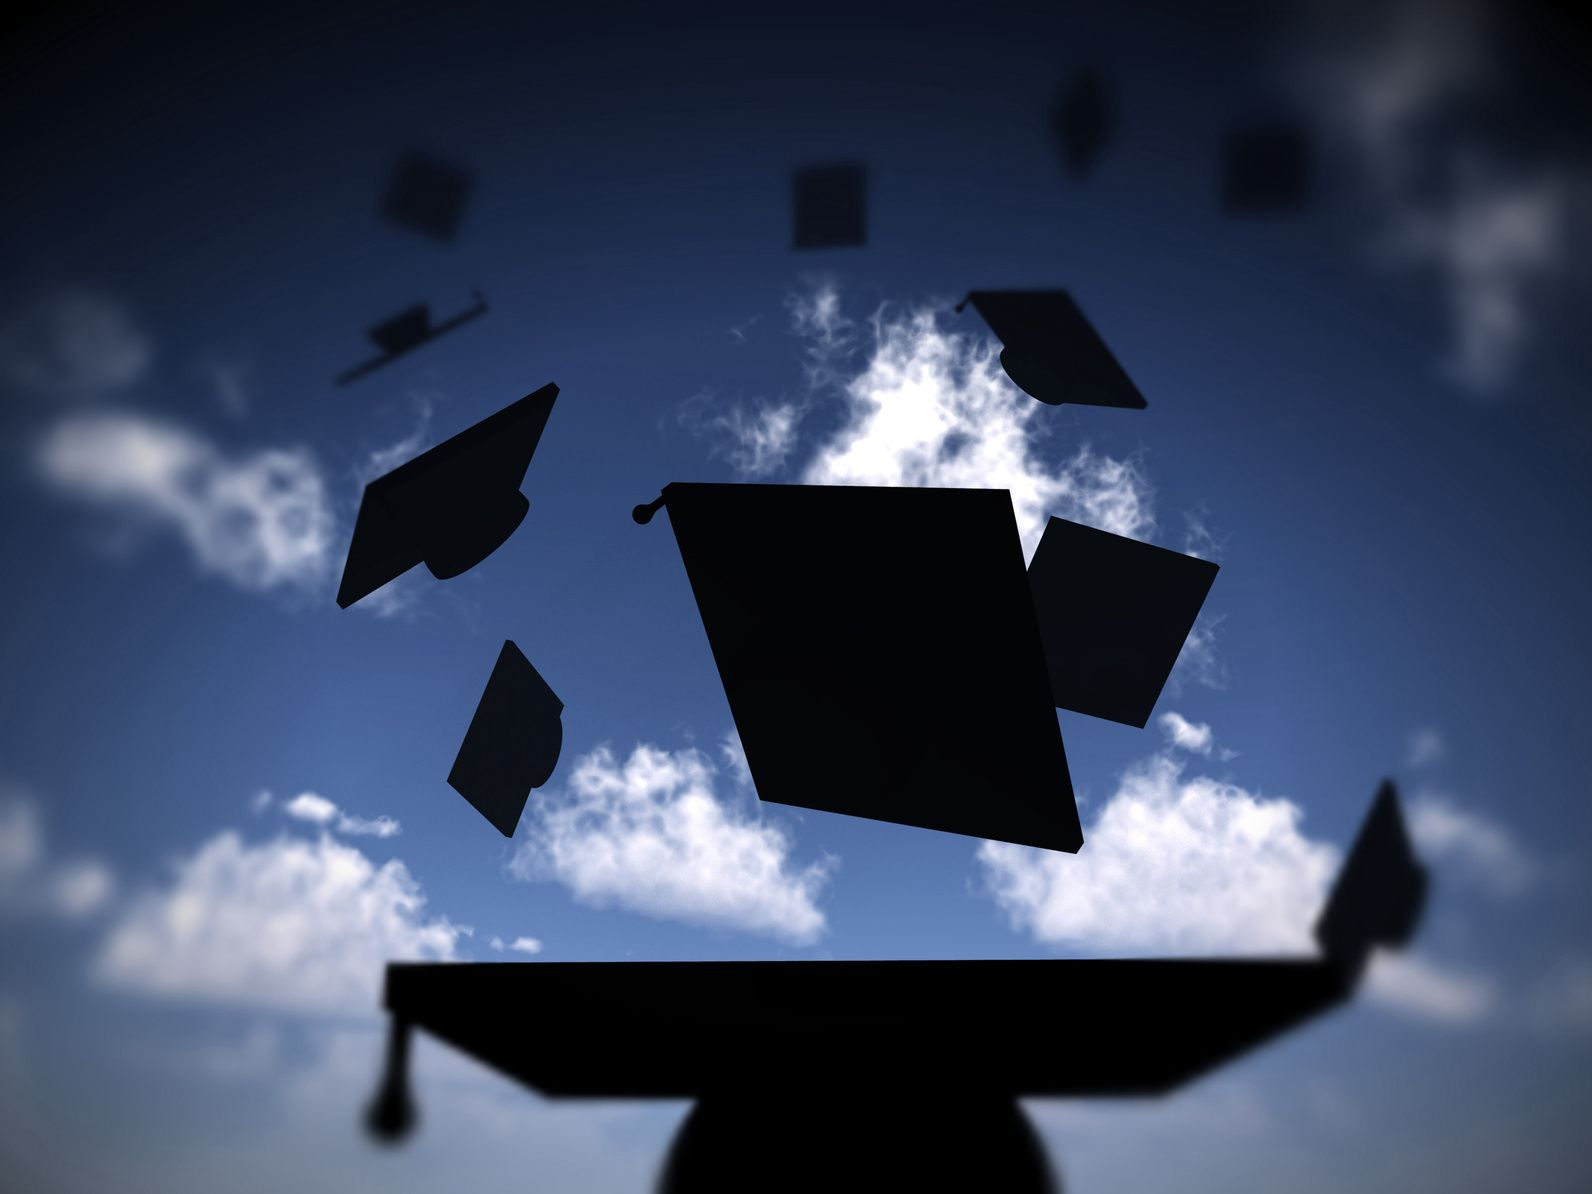 #TheMoreYouKnow: What I Learned About Myself As a Graduate Student